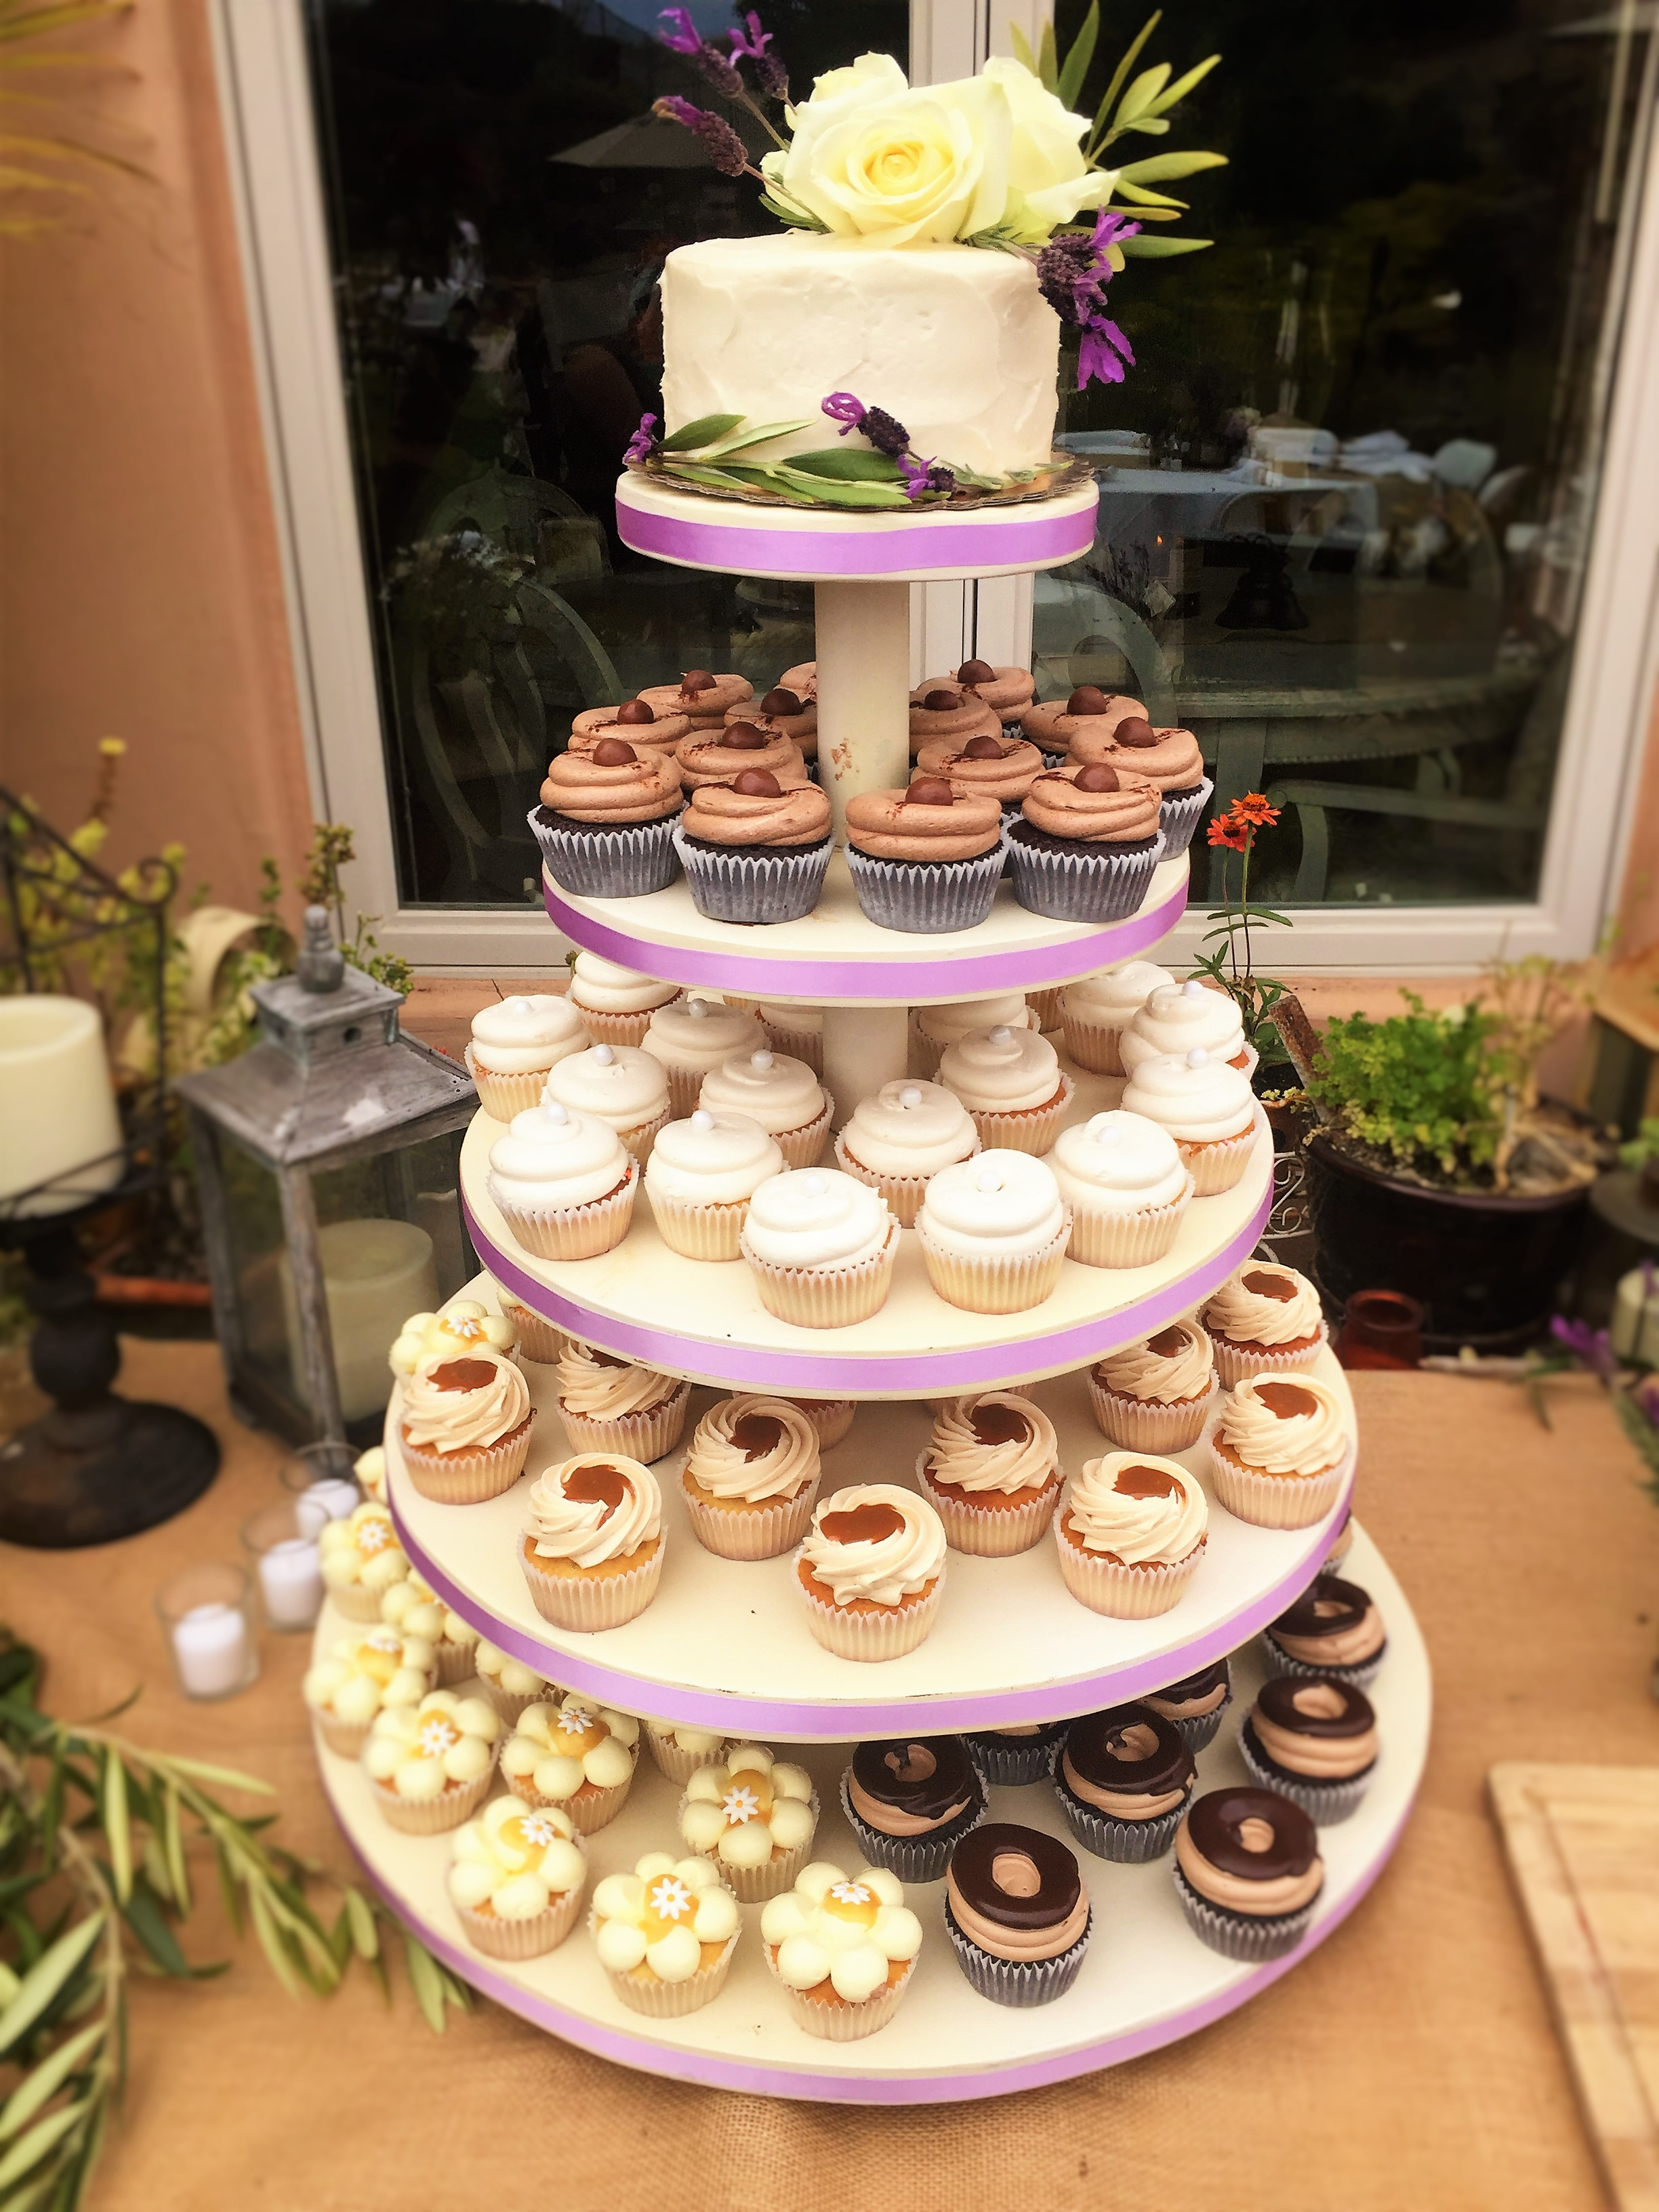 "100 cupcakes, 6"" stucco cutting cake"